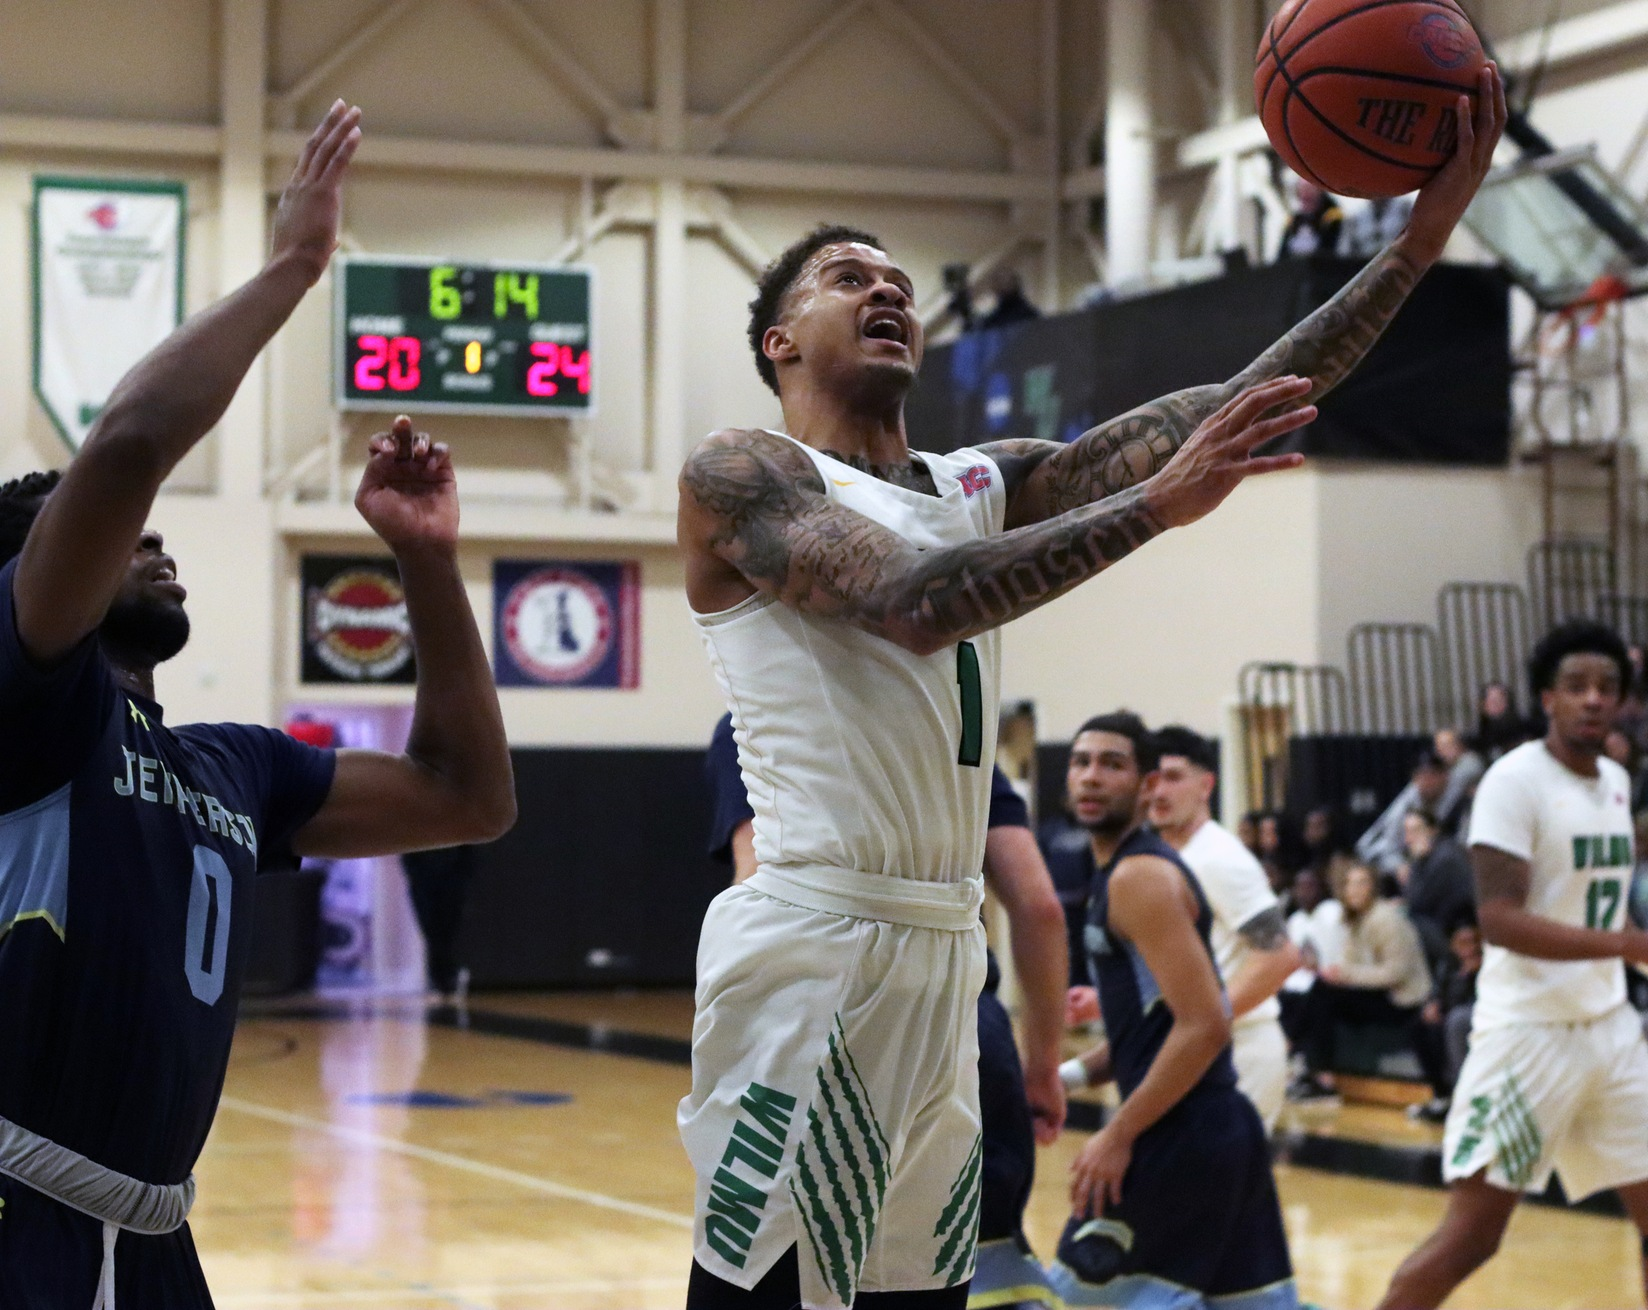 Photo of Jermaine Head who scored 20 points, 8 rebounds, and 7 assists, becoming the all-time leader in assists at WilmU on Wednesday night. Copyright 2020; Wilmington University. All rights reserved. Photo by Laura Gil. February 12, 2020 vs. #10/11 Jefferson.